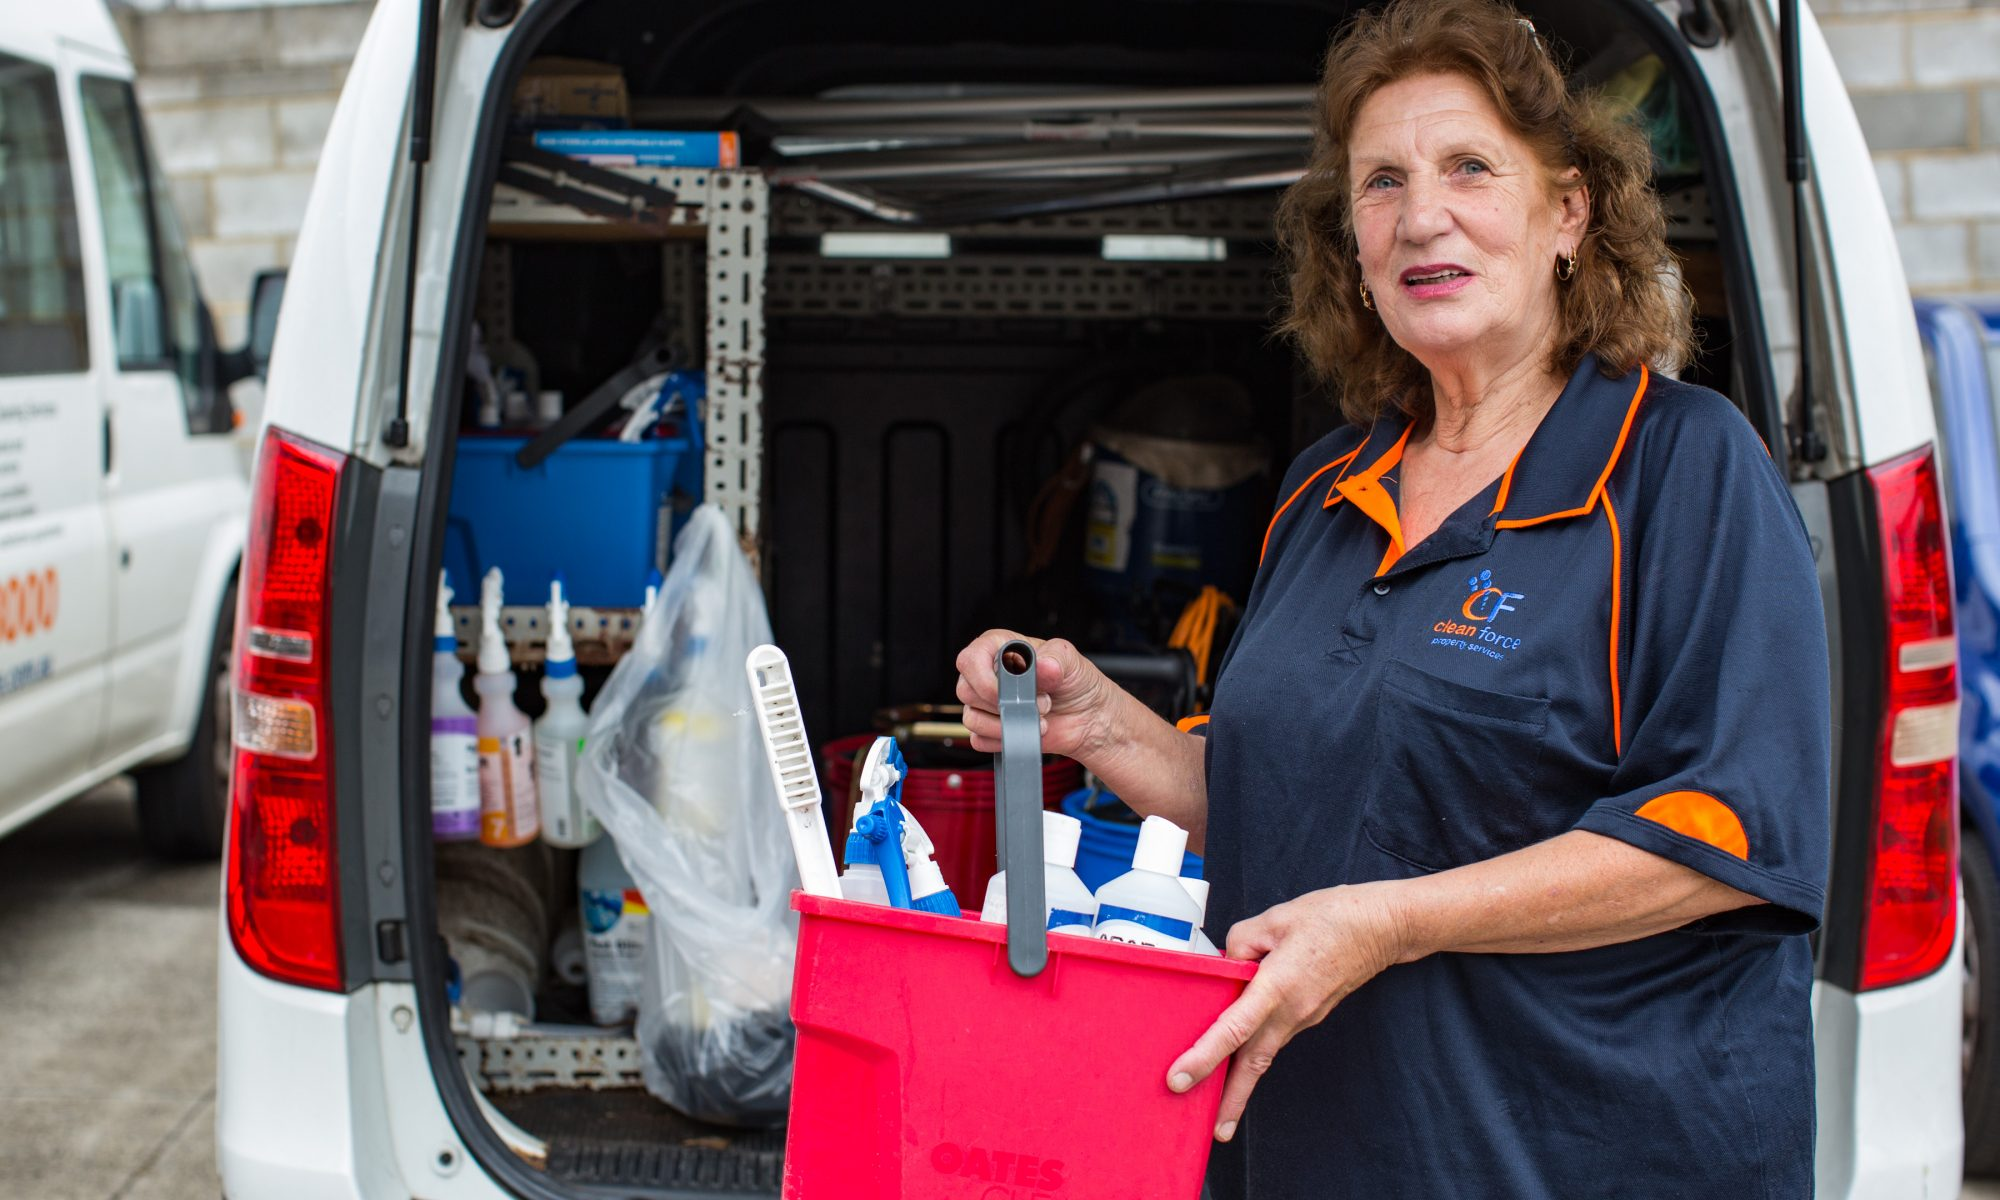 Linda celebrates ten years with Clean Force